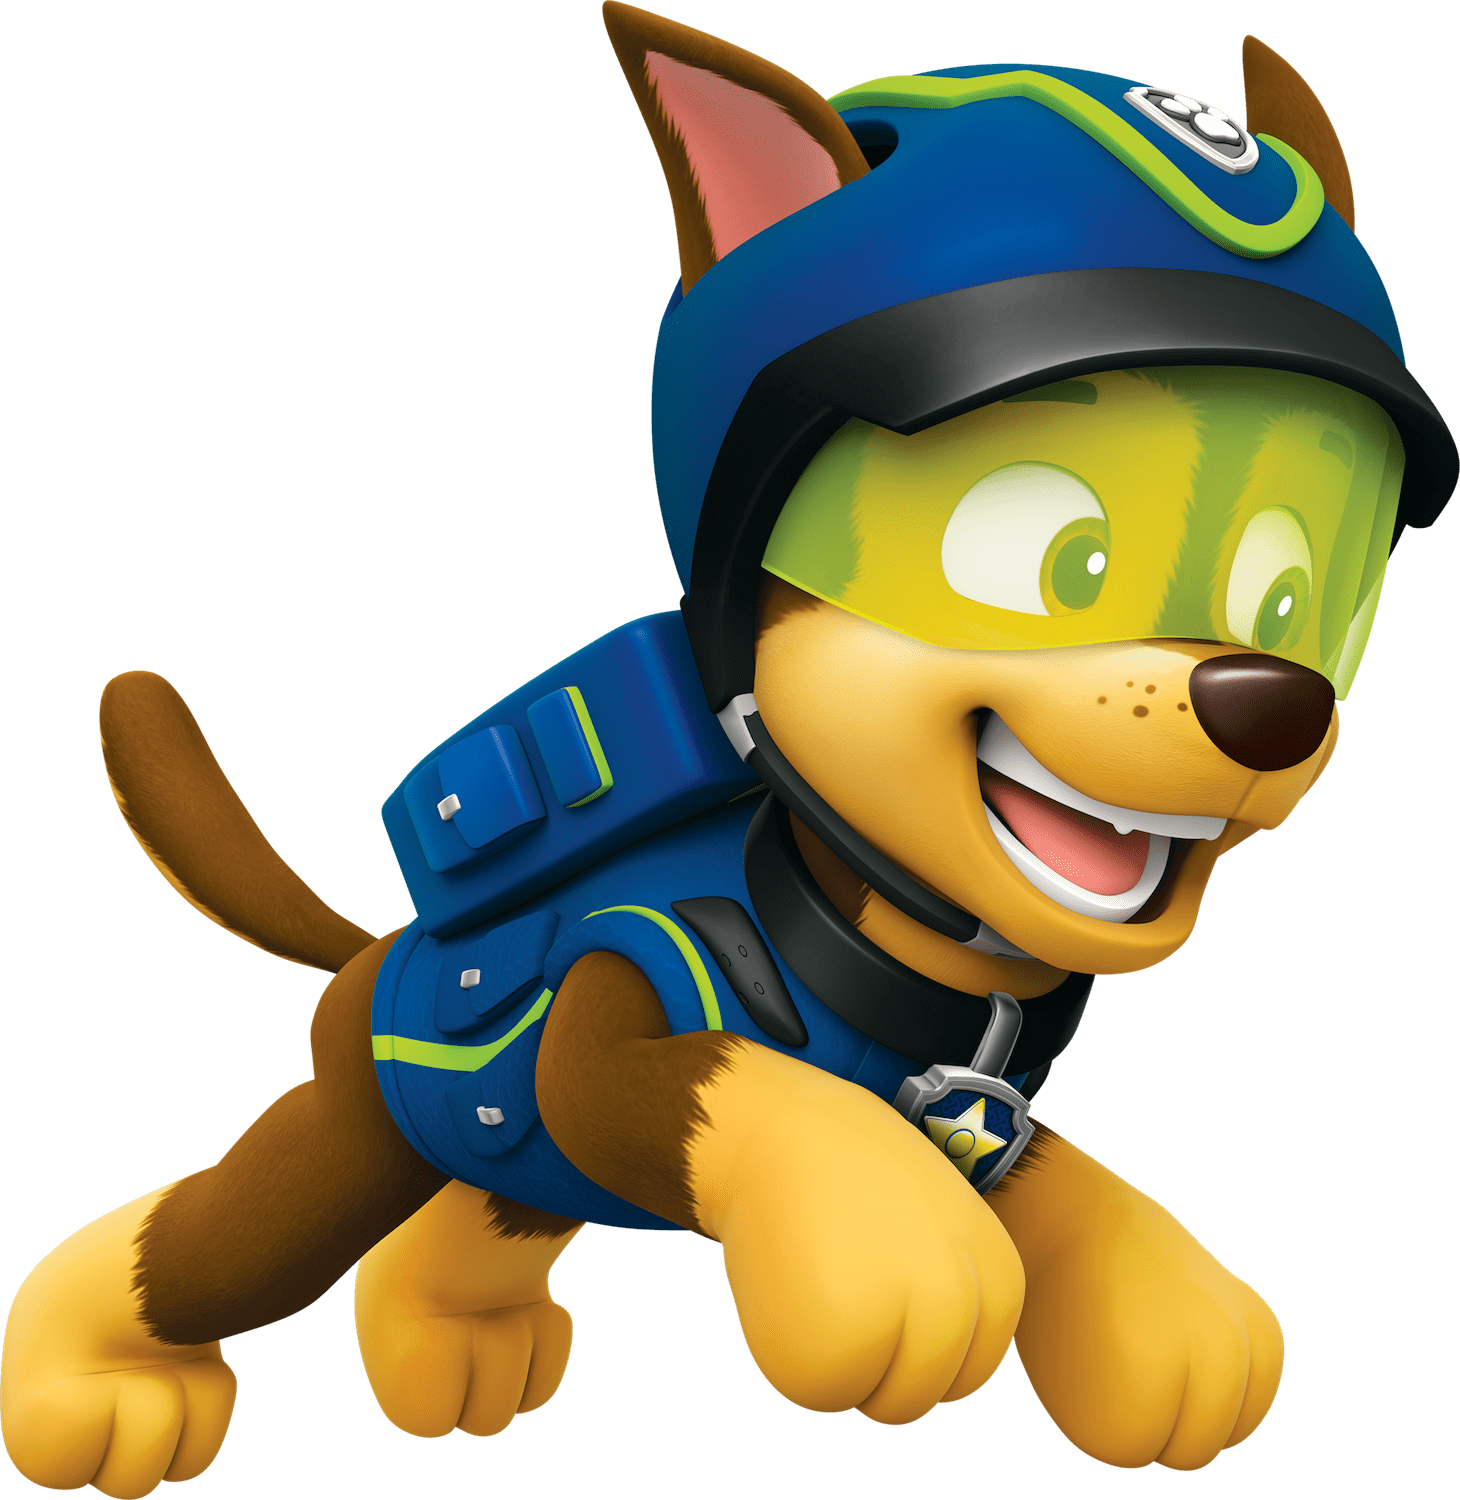 Paw patrol chase png. Jump clipart